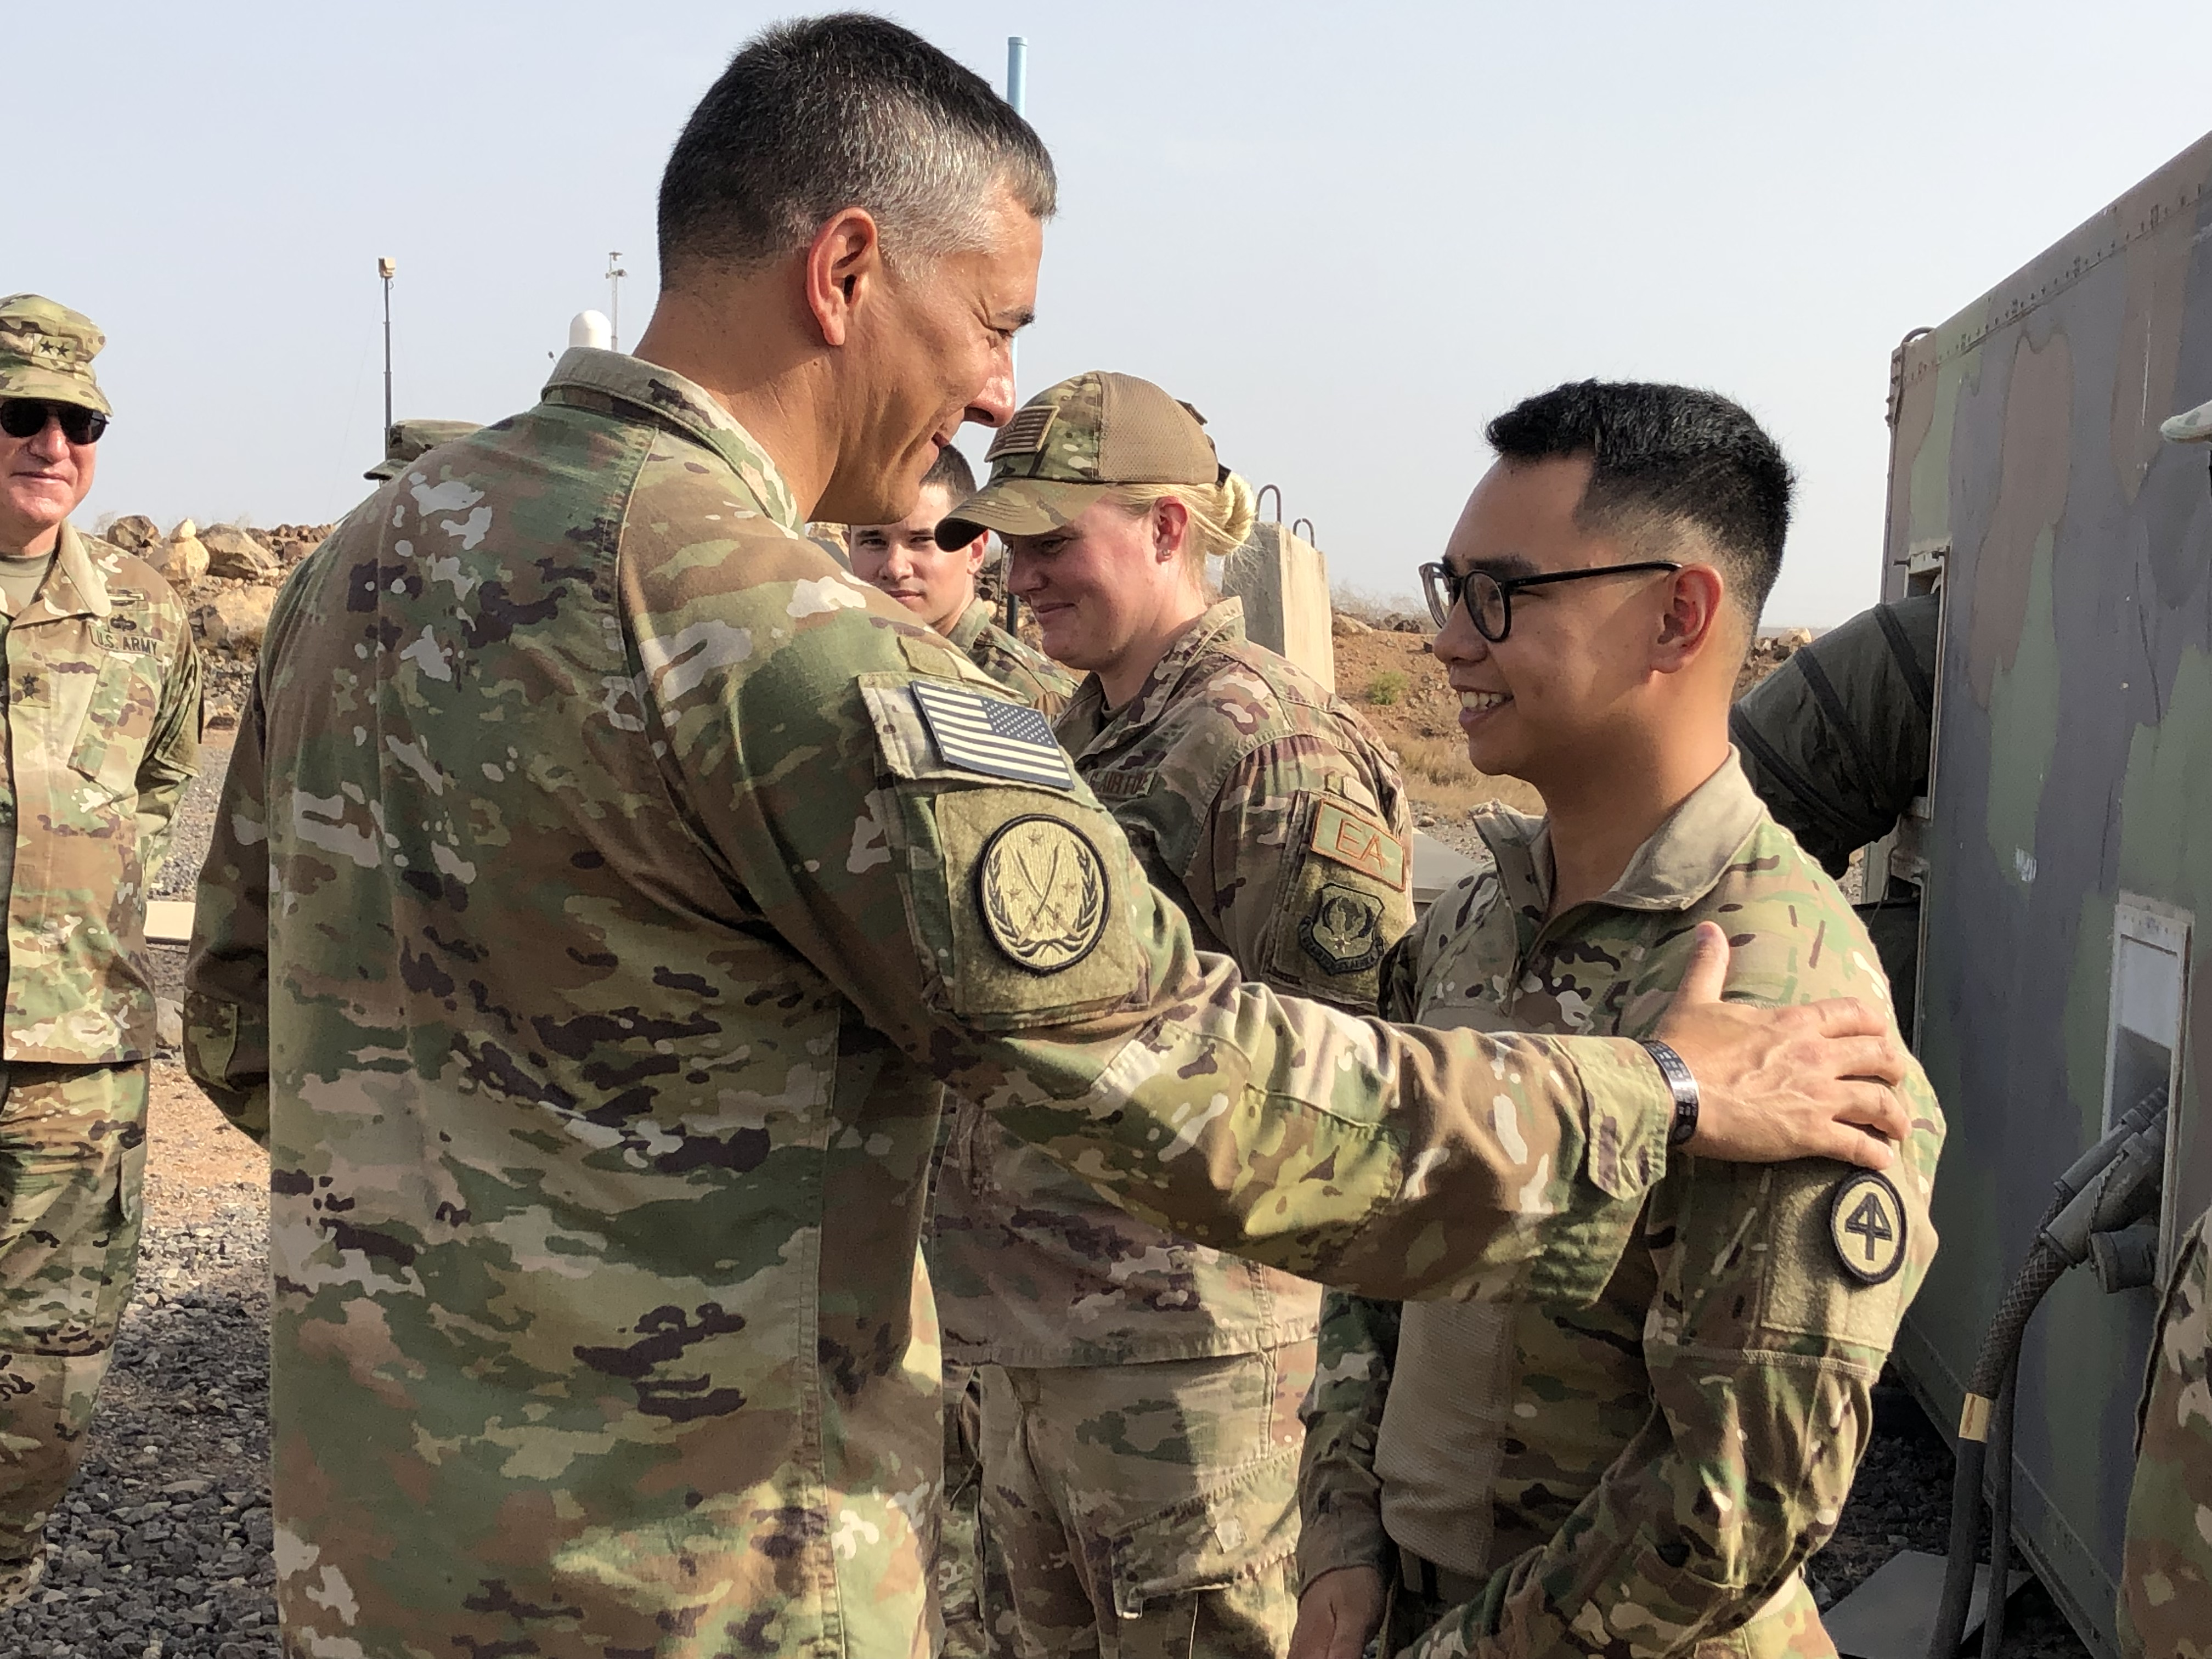 U.S. Army Gen. Stephen Townsend visited with service members assigned to Combined Joint Task Force - Horn of Africa at Camp Lemonnier, Djibouti Aug. 7, 2019. Townsend discussed the importance of engagements and training in East Africa and the impact U.S. service members are having on security in the region.